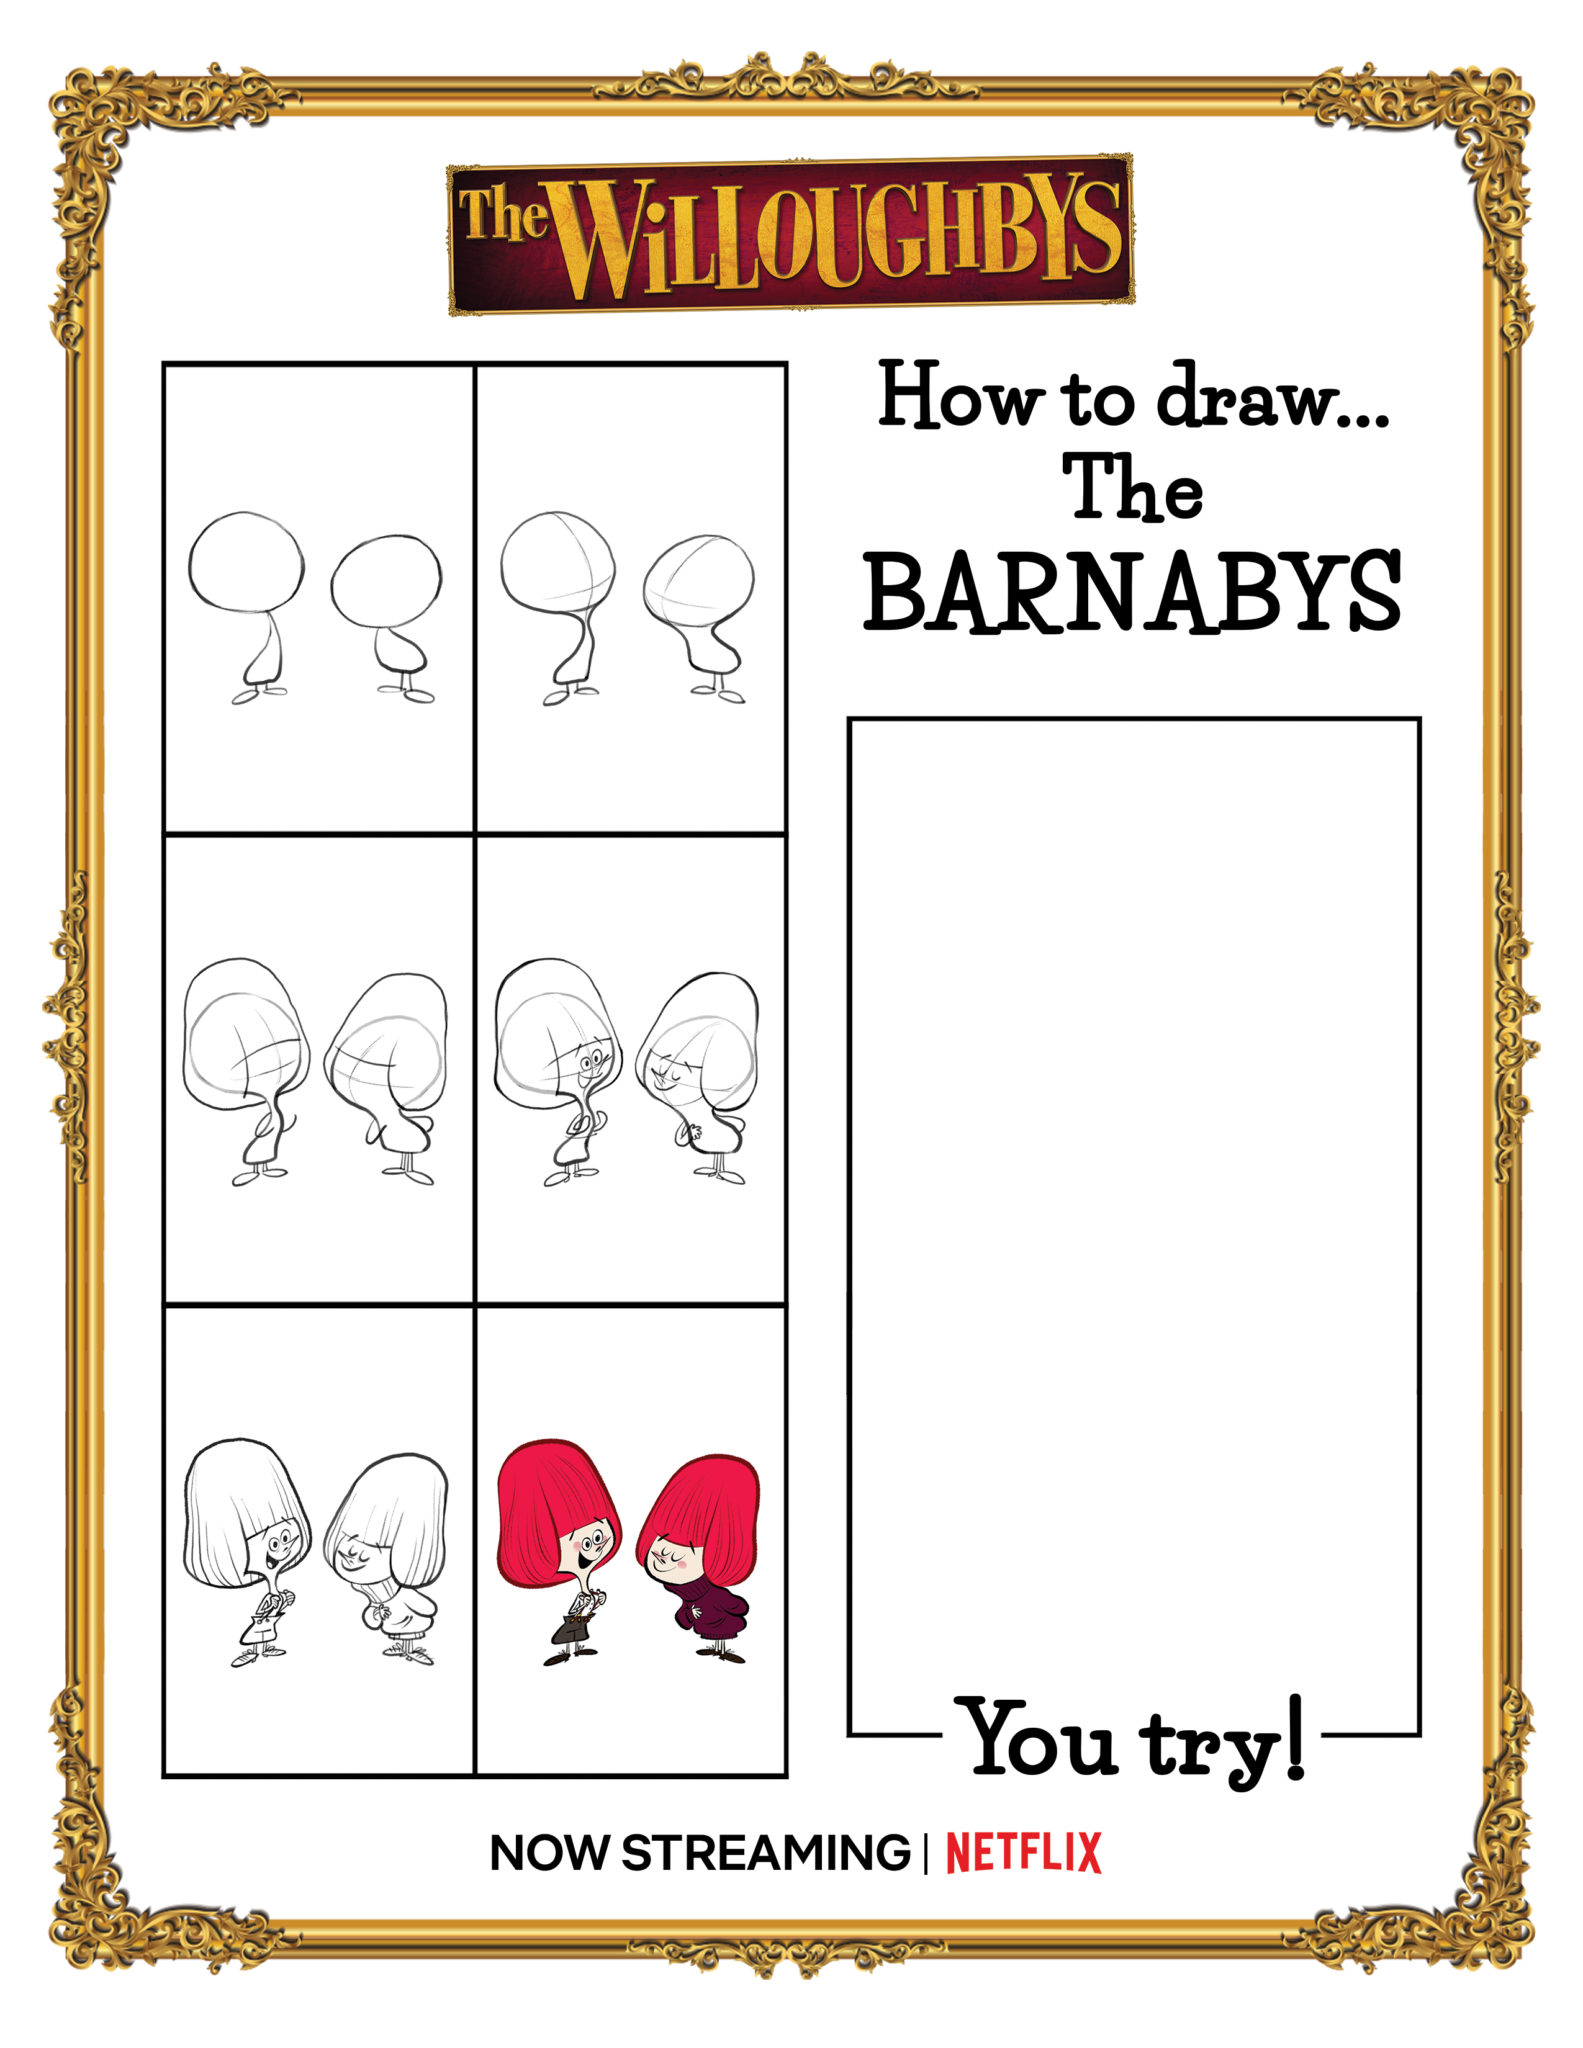 Learn How to Draw THE WILLOUGHBYS